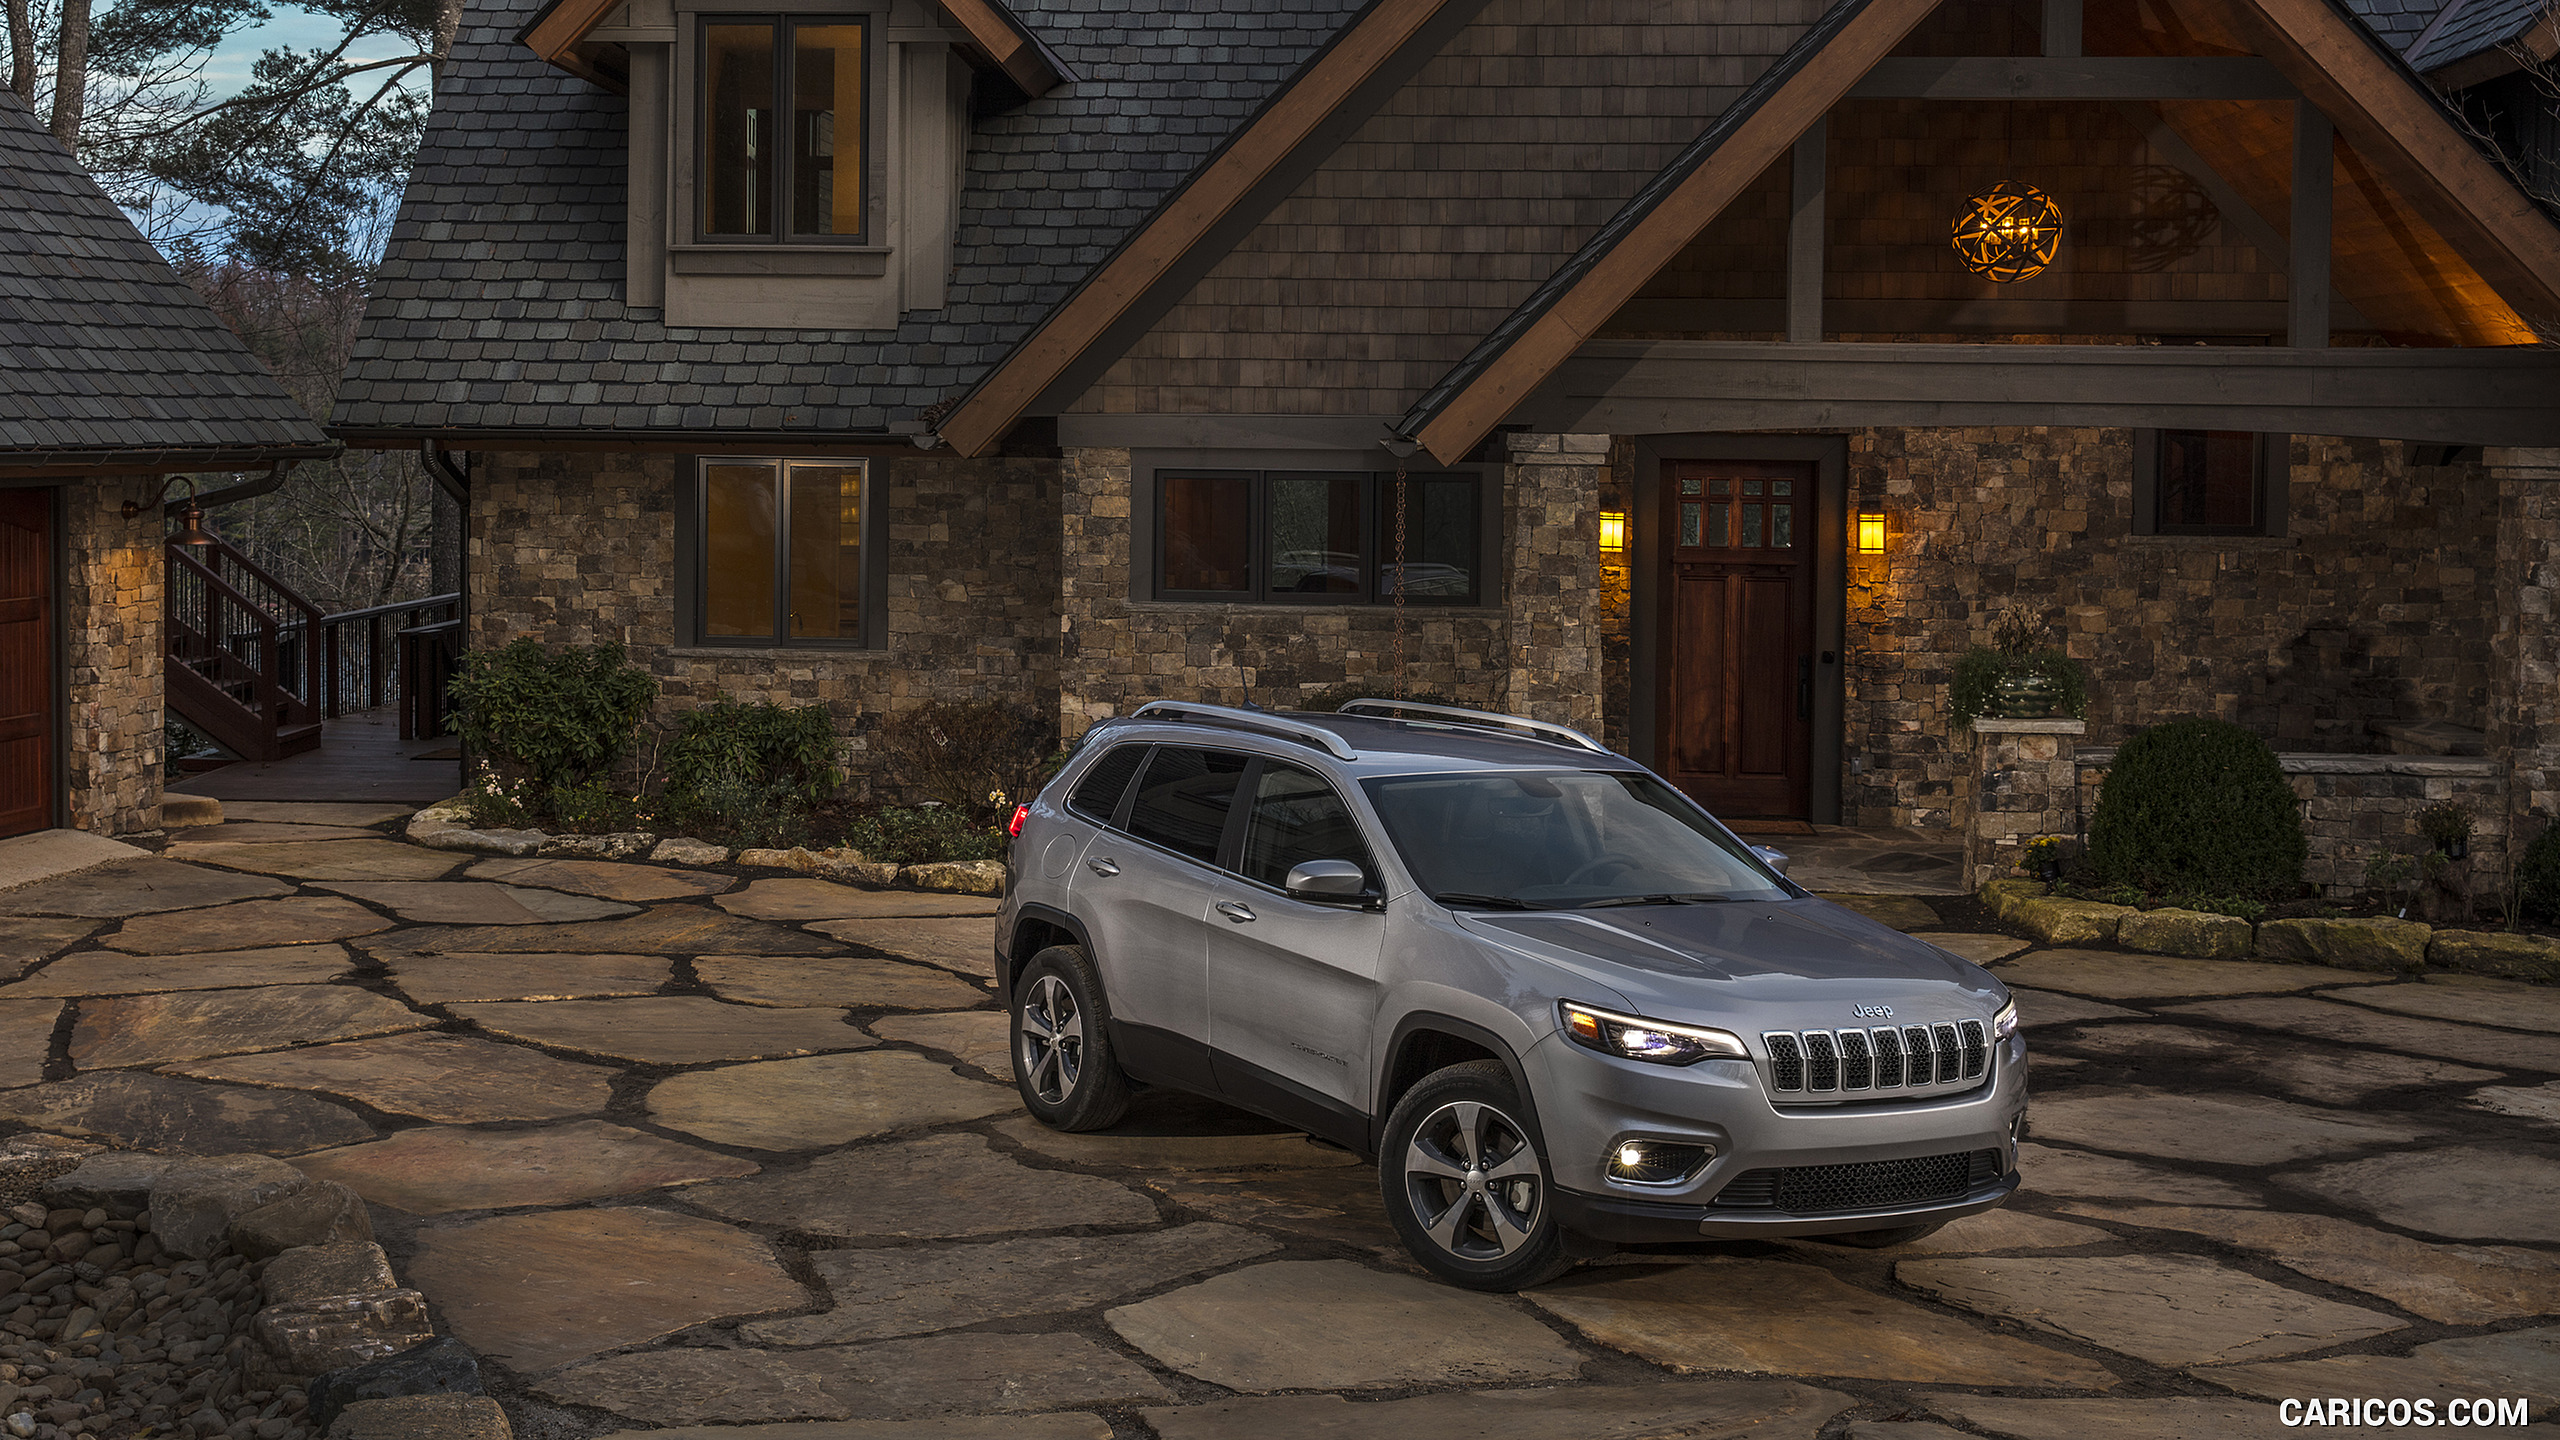 2019 Jeep Cherokee Limited   Front Three Quarter HD Wallpaper 84 2560x1440